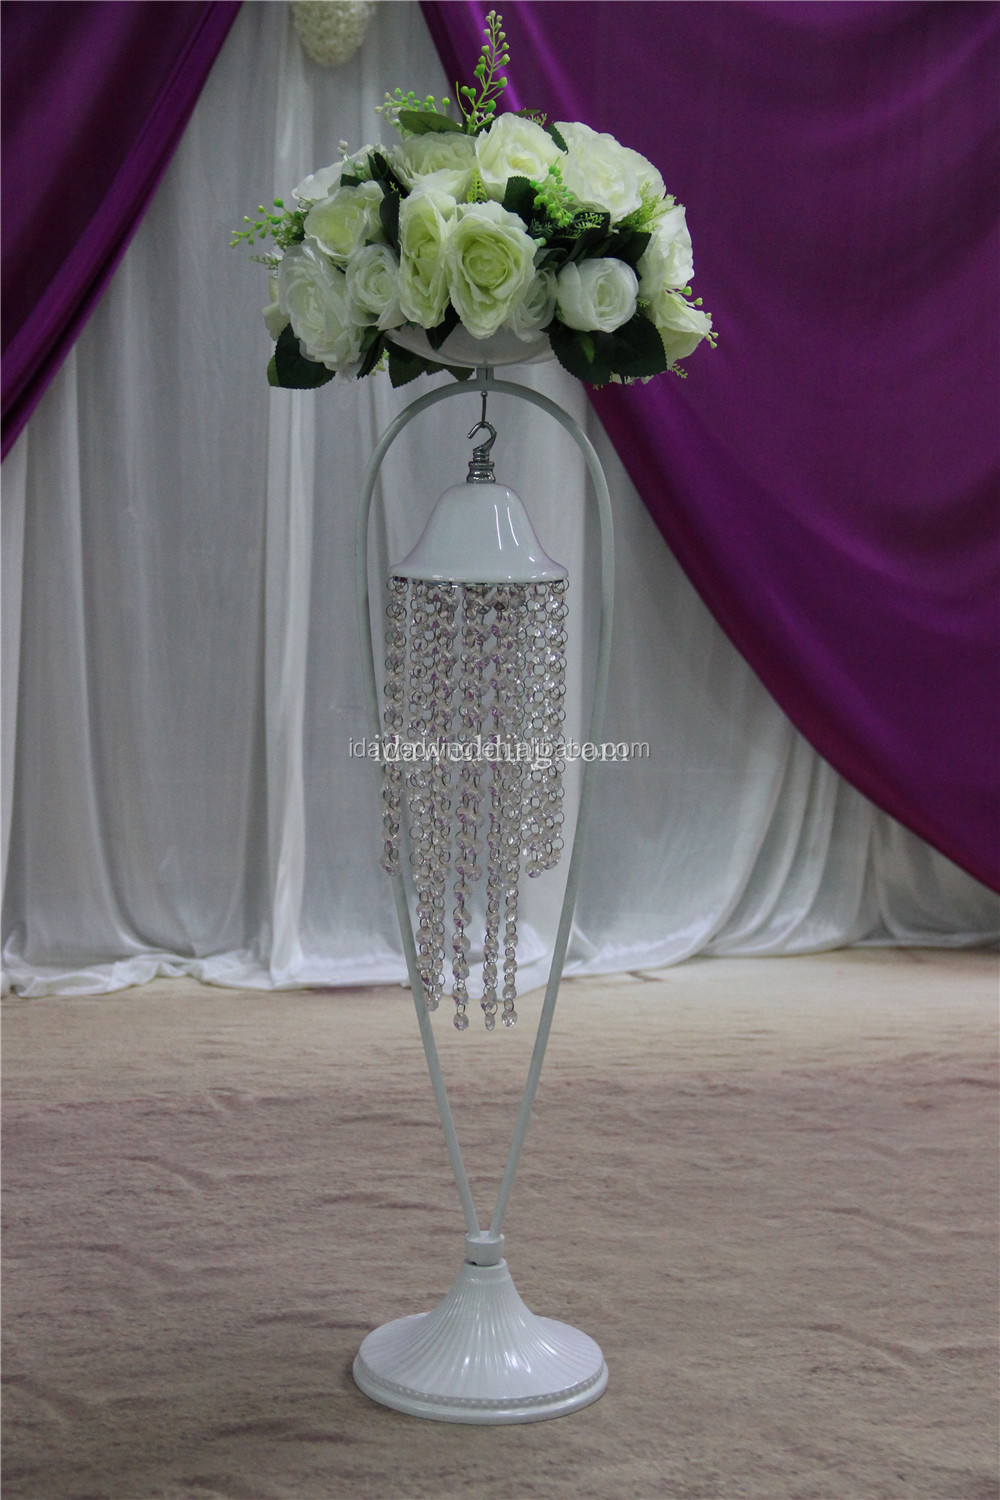 Aisle metal wedding flower stand aisle metal wedding flower stand aisle metal wedding flower stand aisle metal wedding flower stand suppliers and manufacturers at alibaba floridaeventfo Image collections